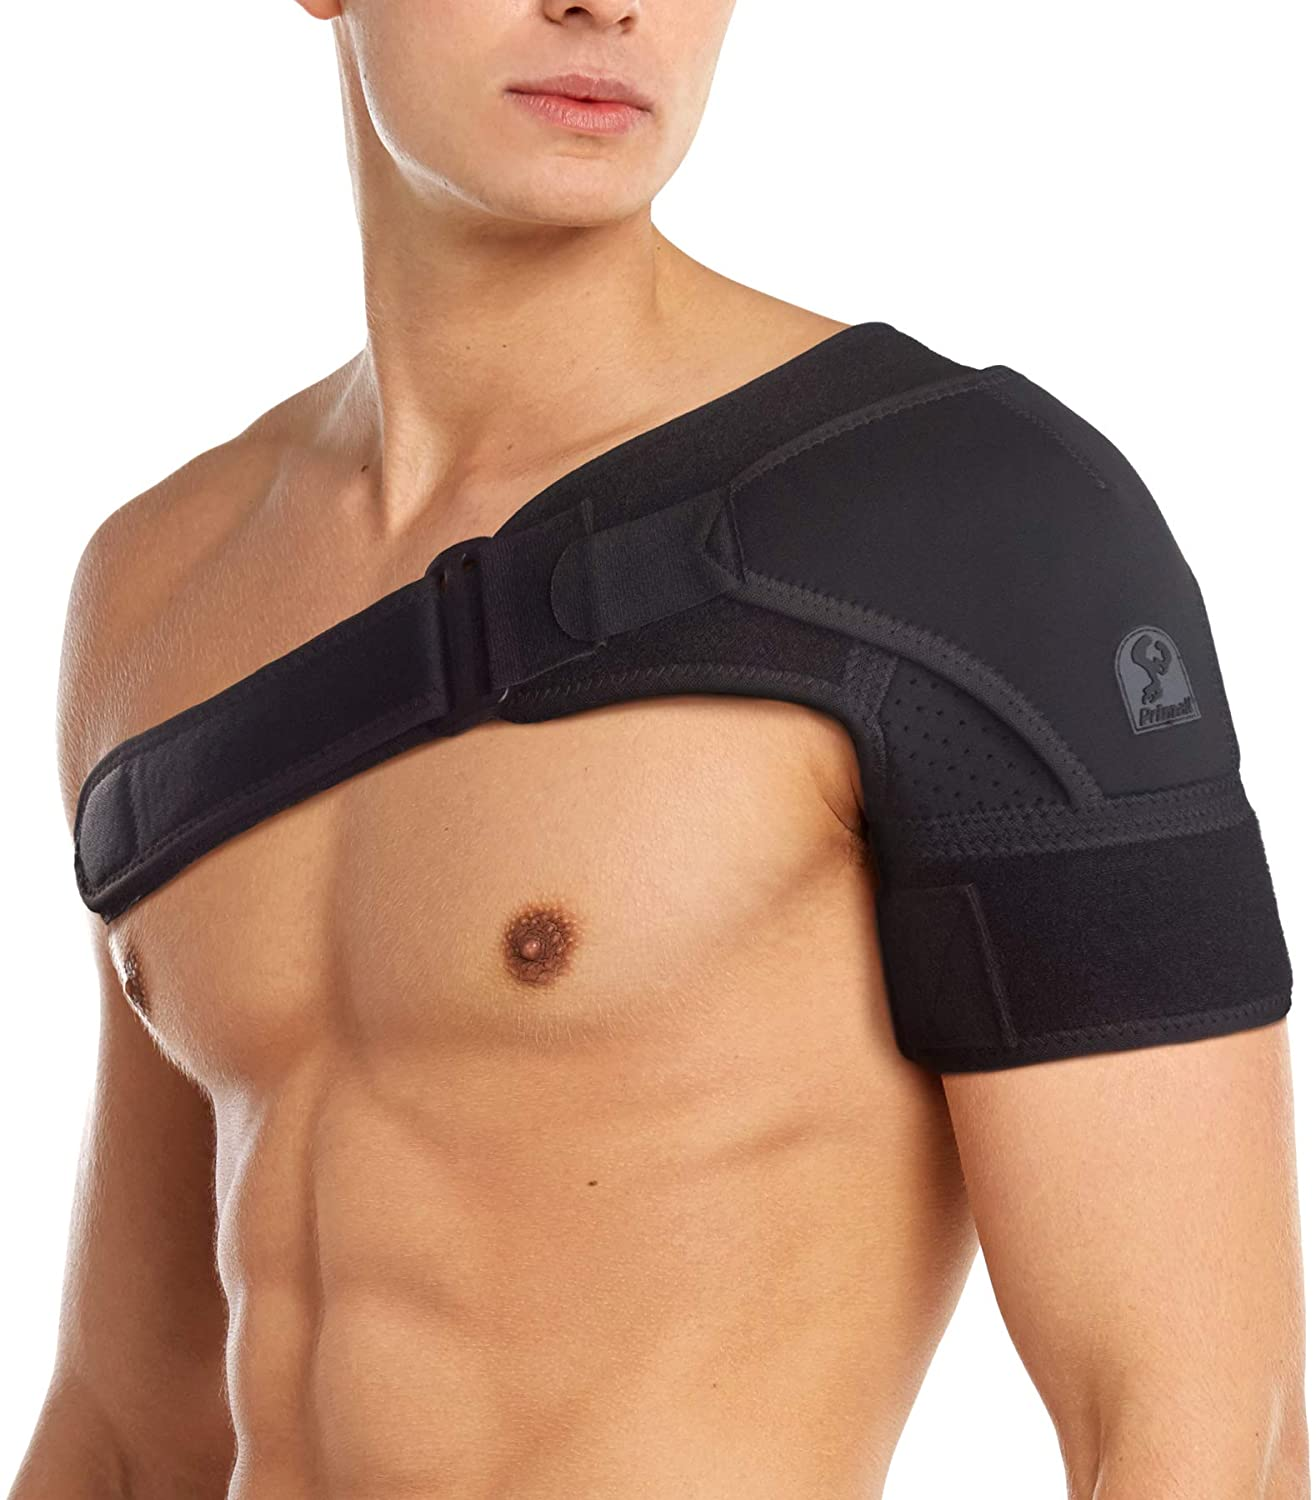 PRIMALL Orthopedic Care Shoulder Brace for Men and Women | Compression Sleeve for Torn Rotator Cuff, Bursitis, Dislocated AC Joint, and Other Injuries | Shoulder Injury Support for Pain Relief (S/M)